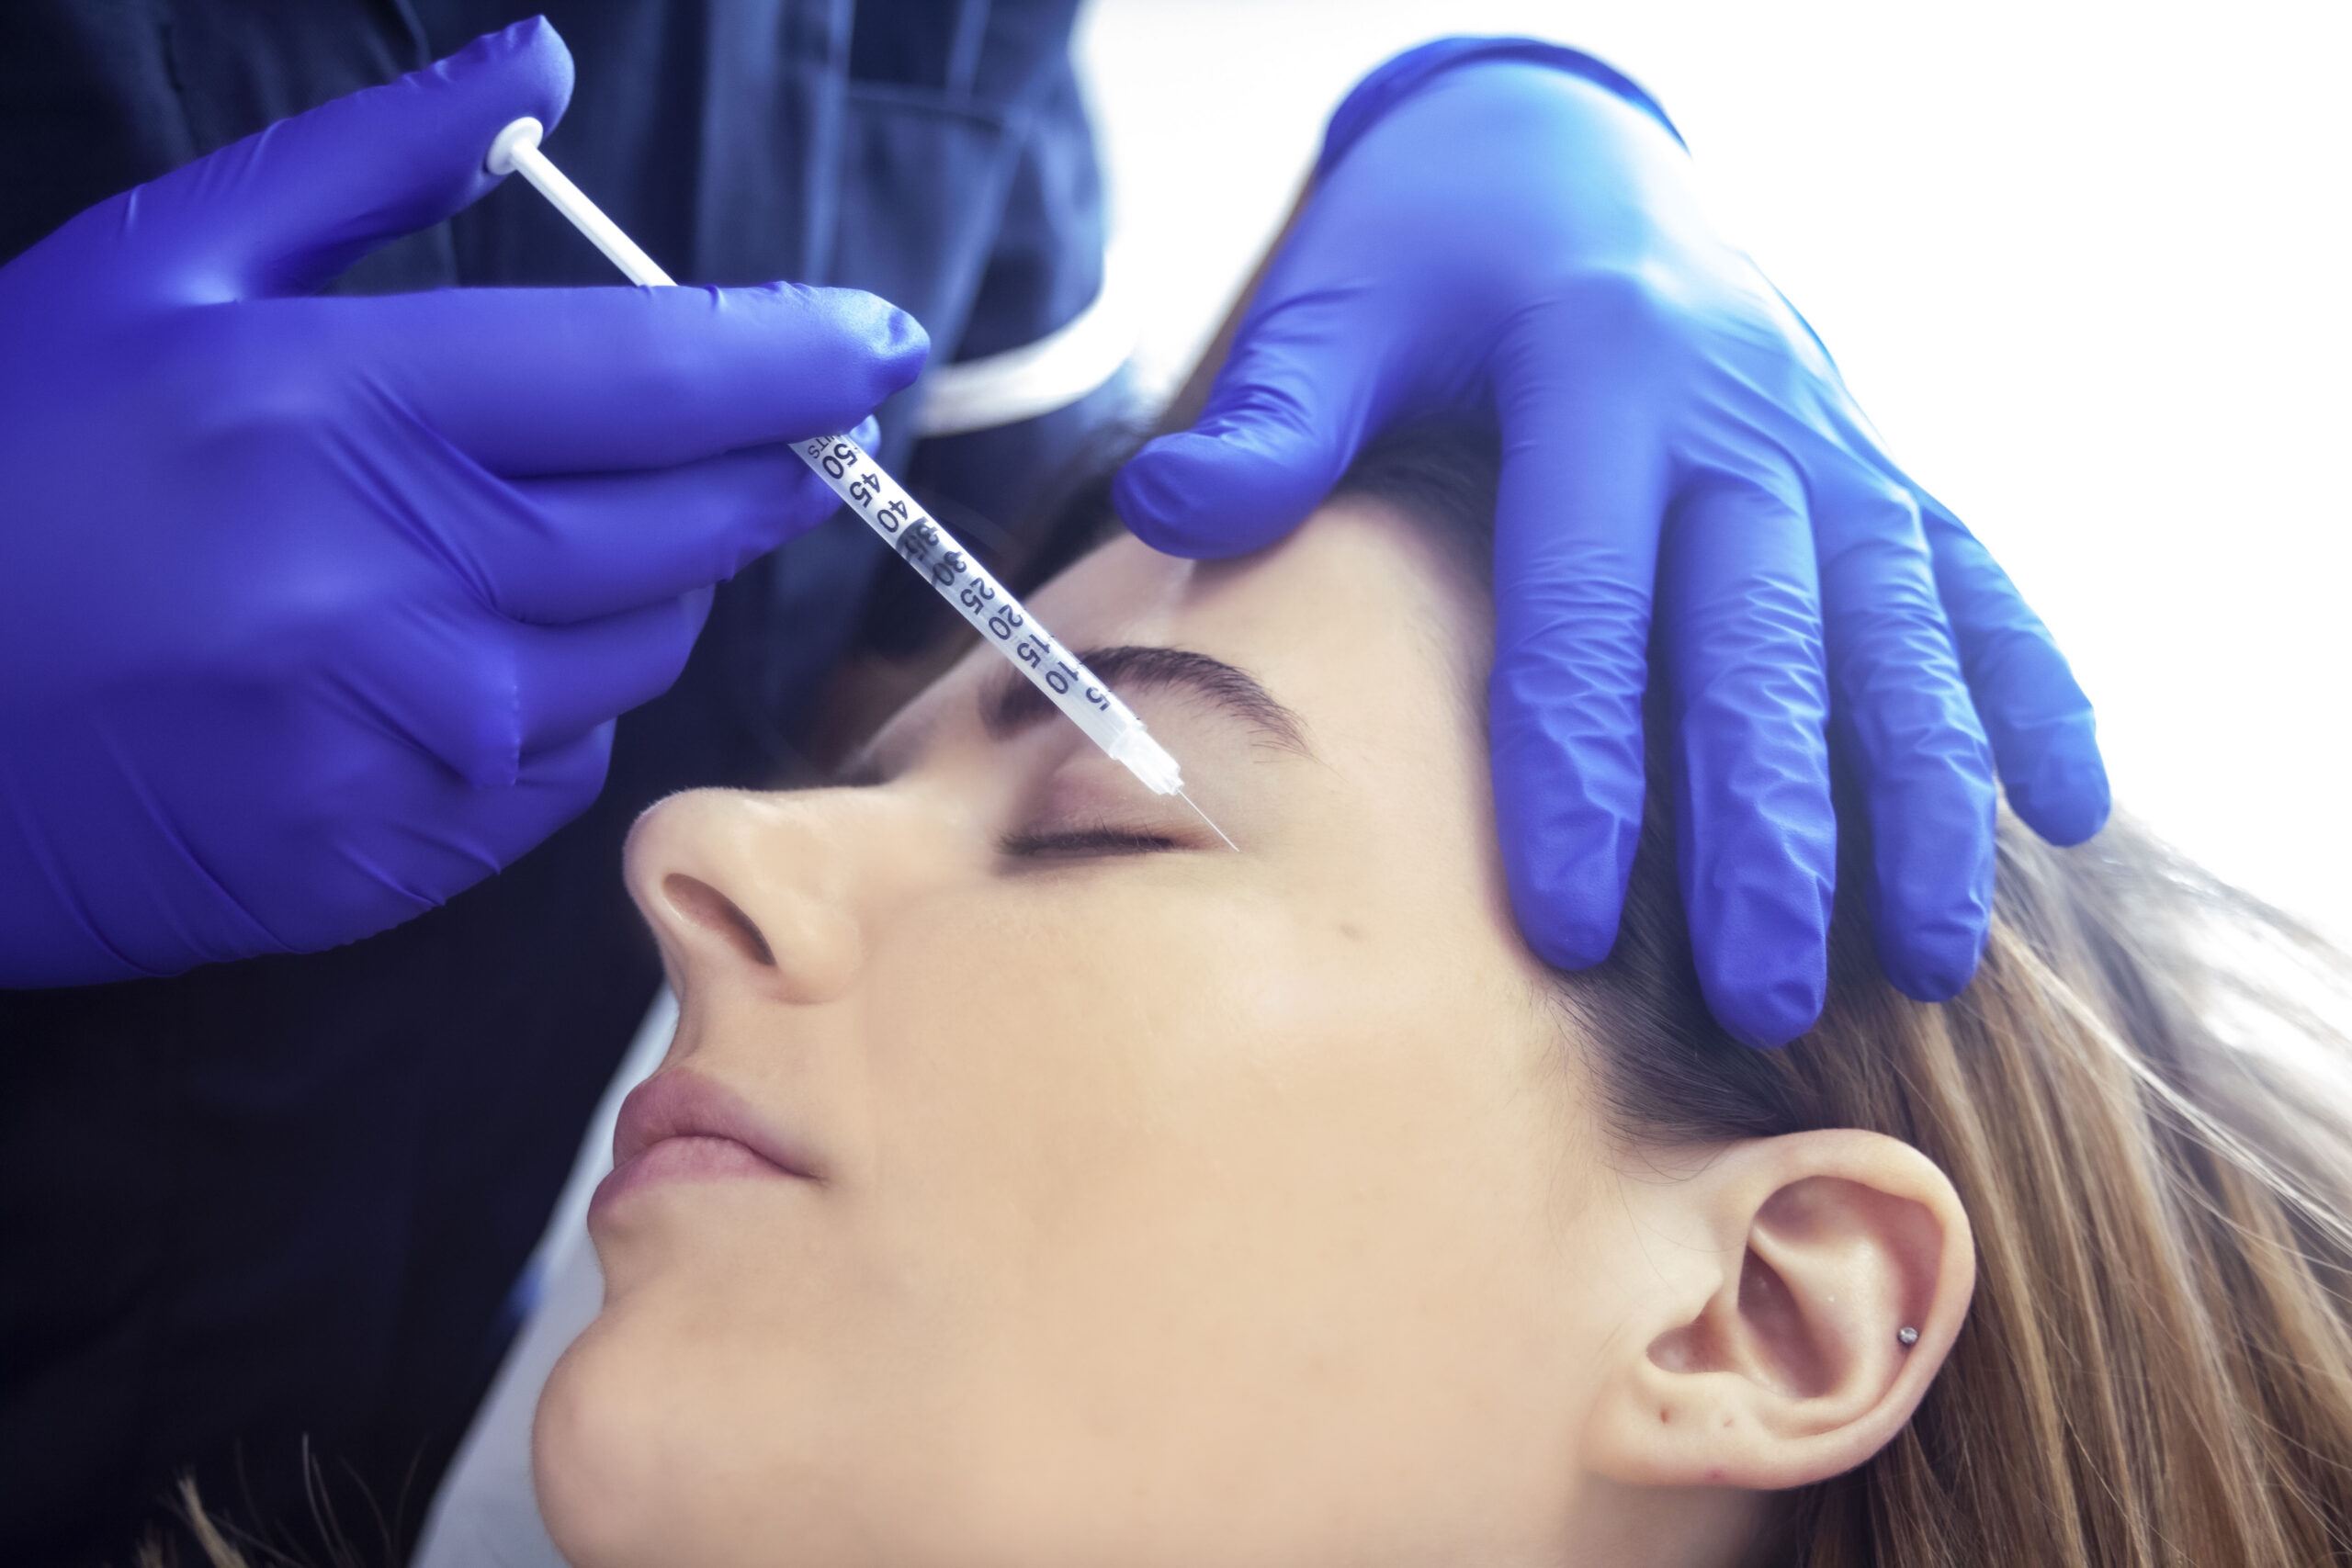 What is Profhilo & how does it differ from Fillers?